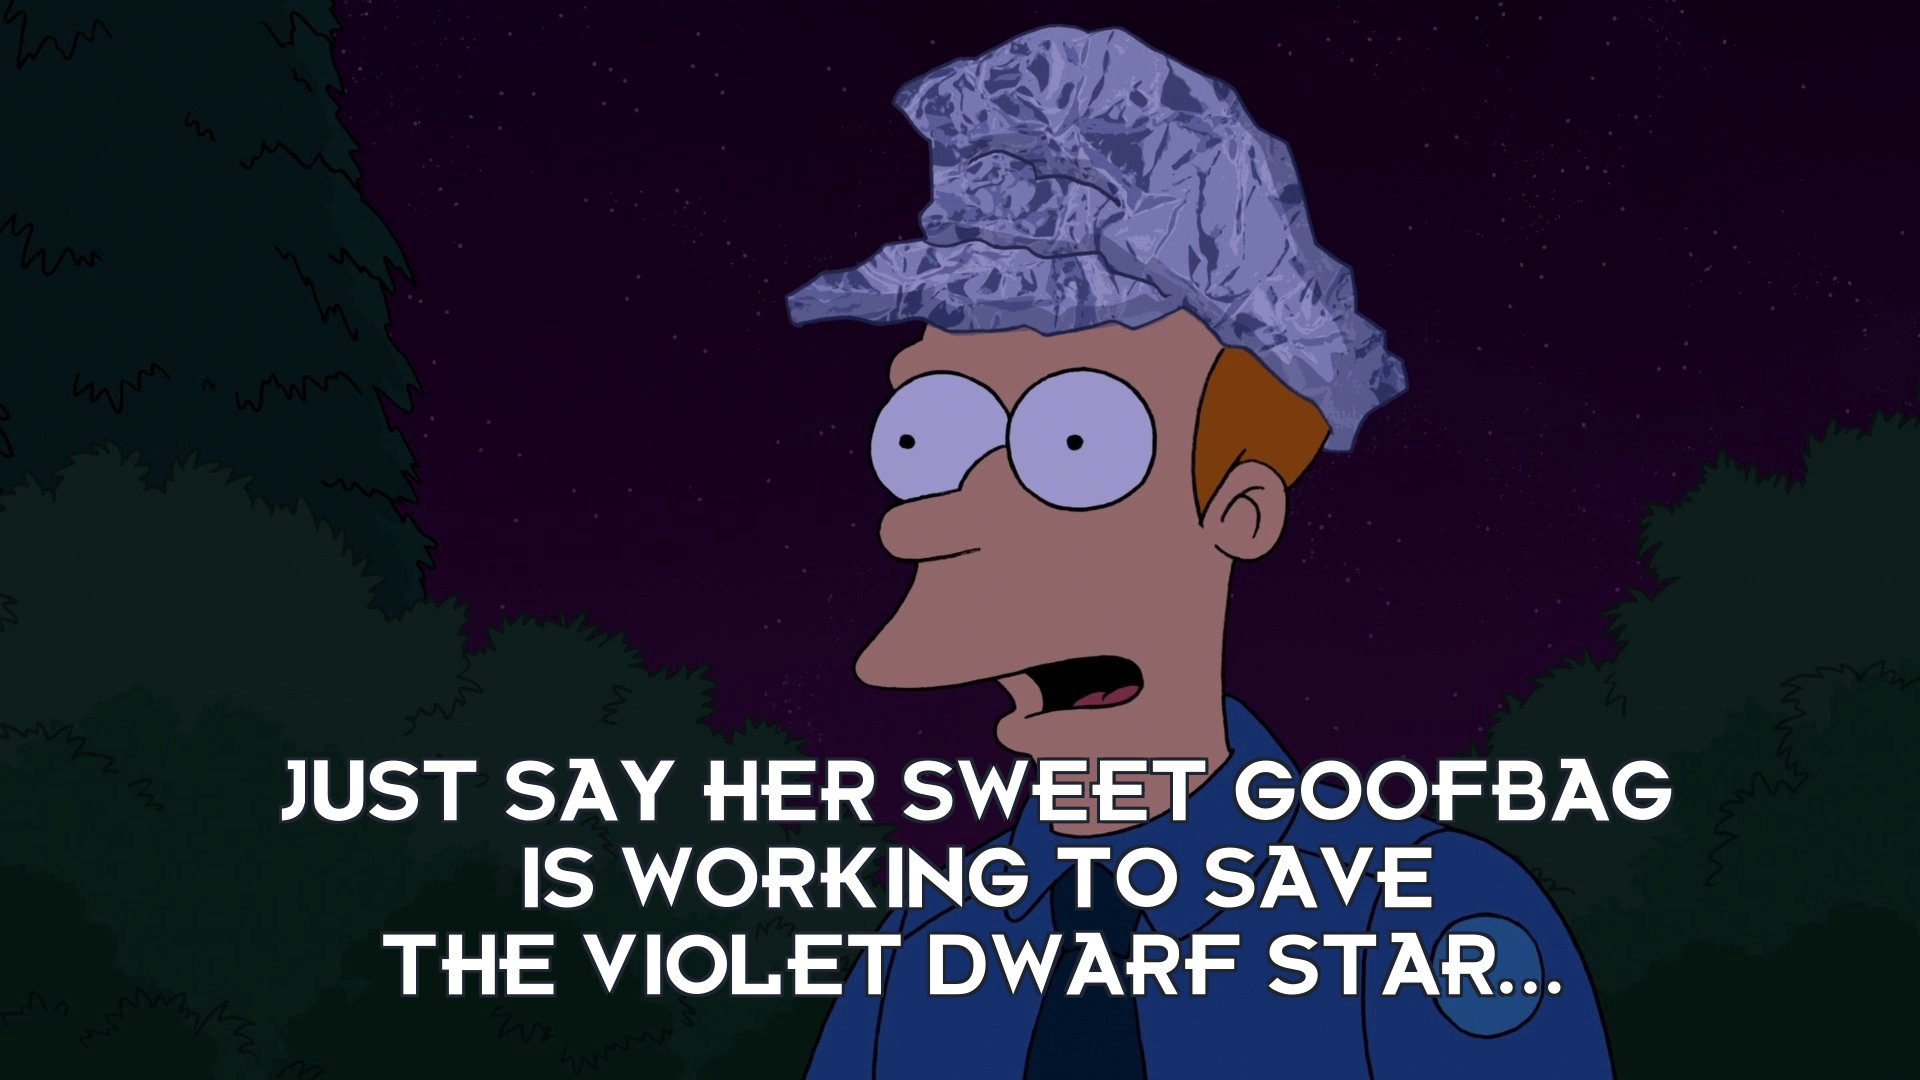 Philip J Fry: Just say her sweet goofbag is working to save the violet dwarf star...